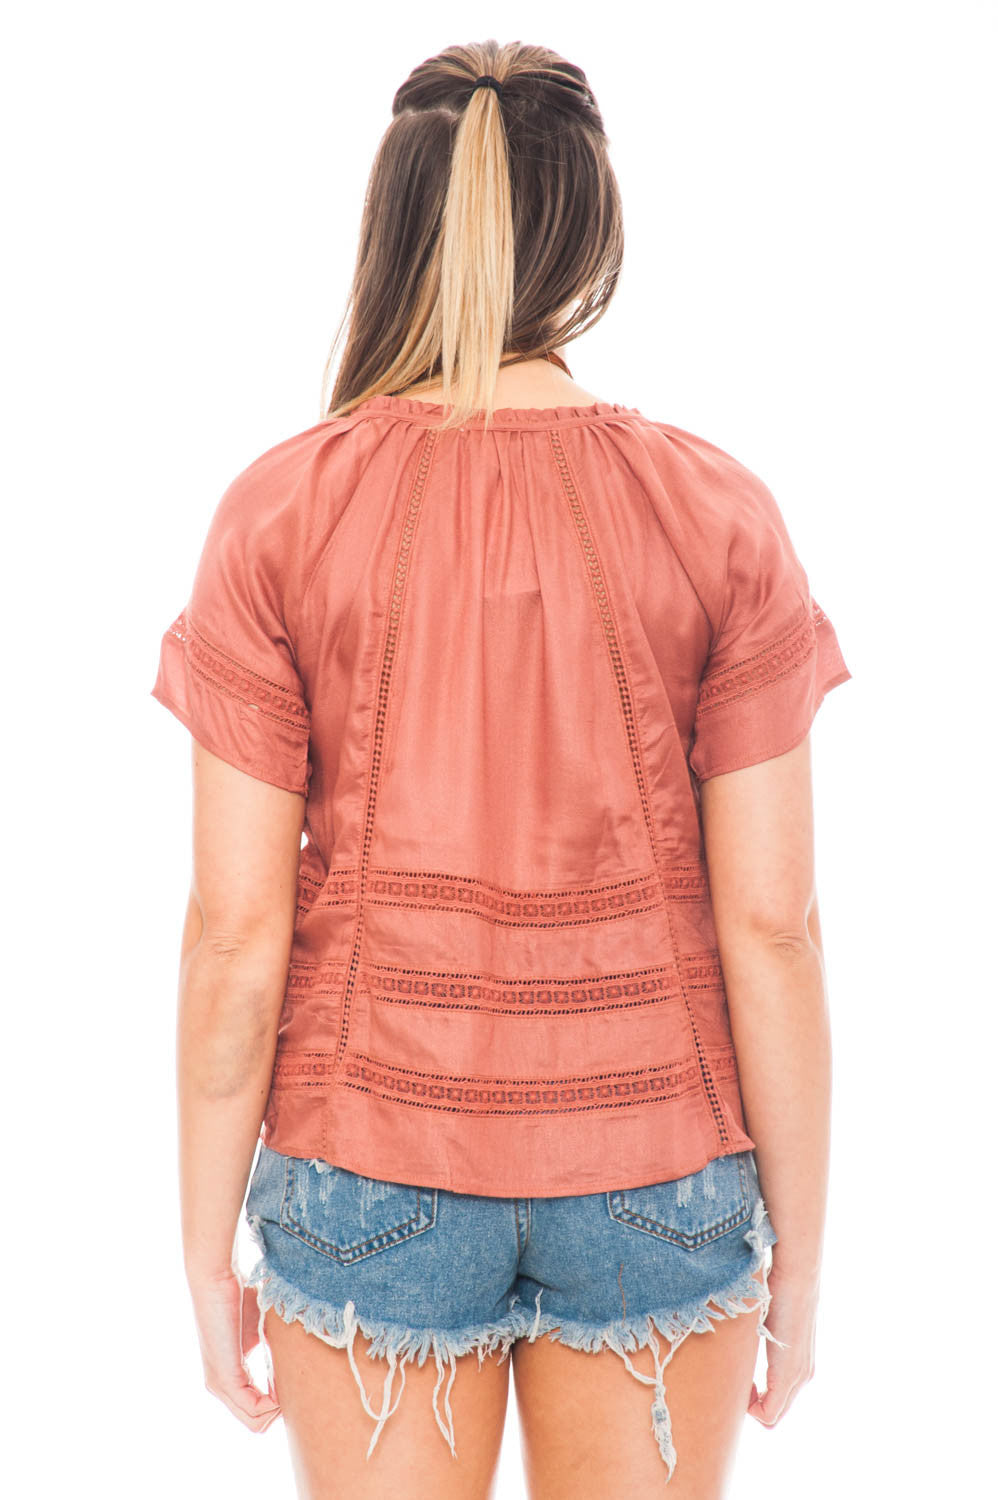 Blouse - Boho Woven Top with Tassels